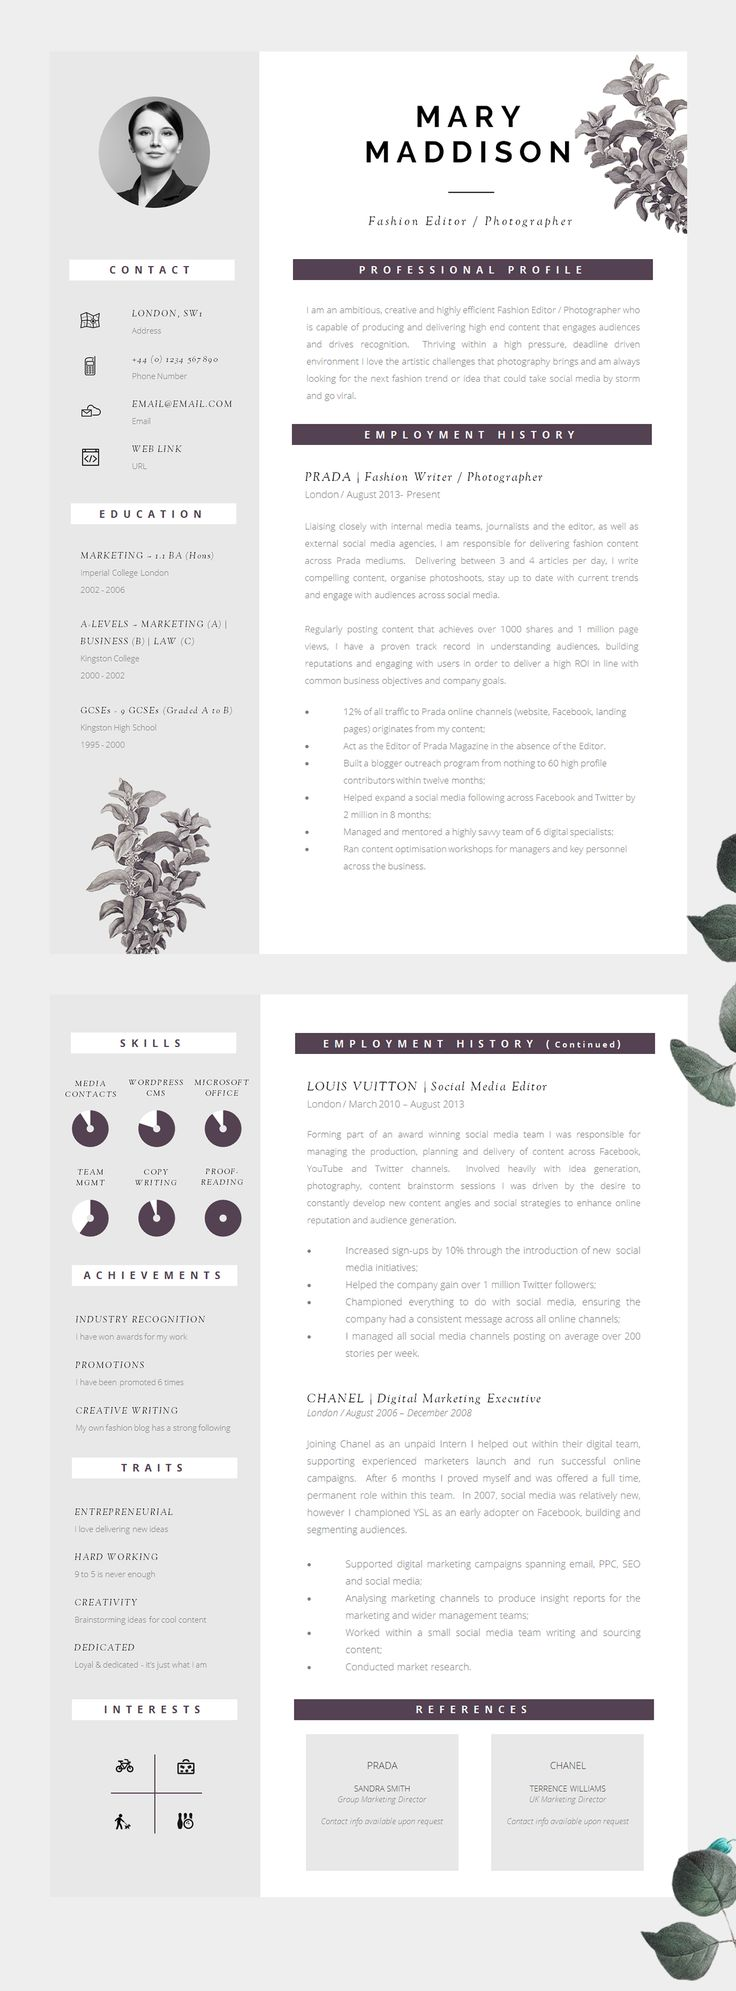 Well Designed CV, Modern Yet Professional   Information Is Clear To Read  And Well Structured  Sample Graphic Design Resume